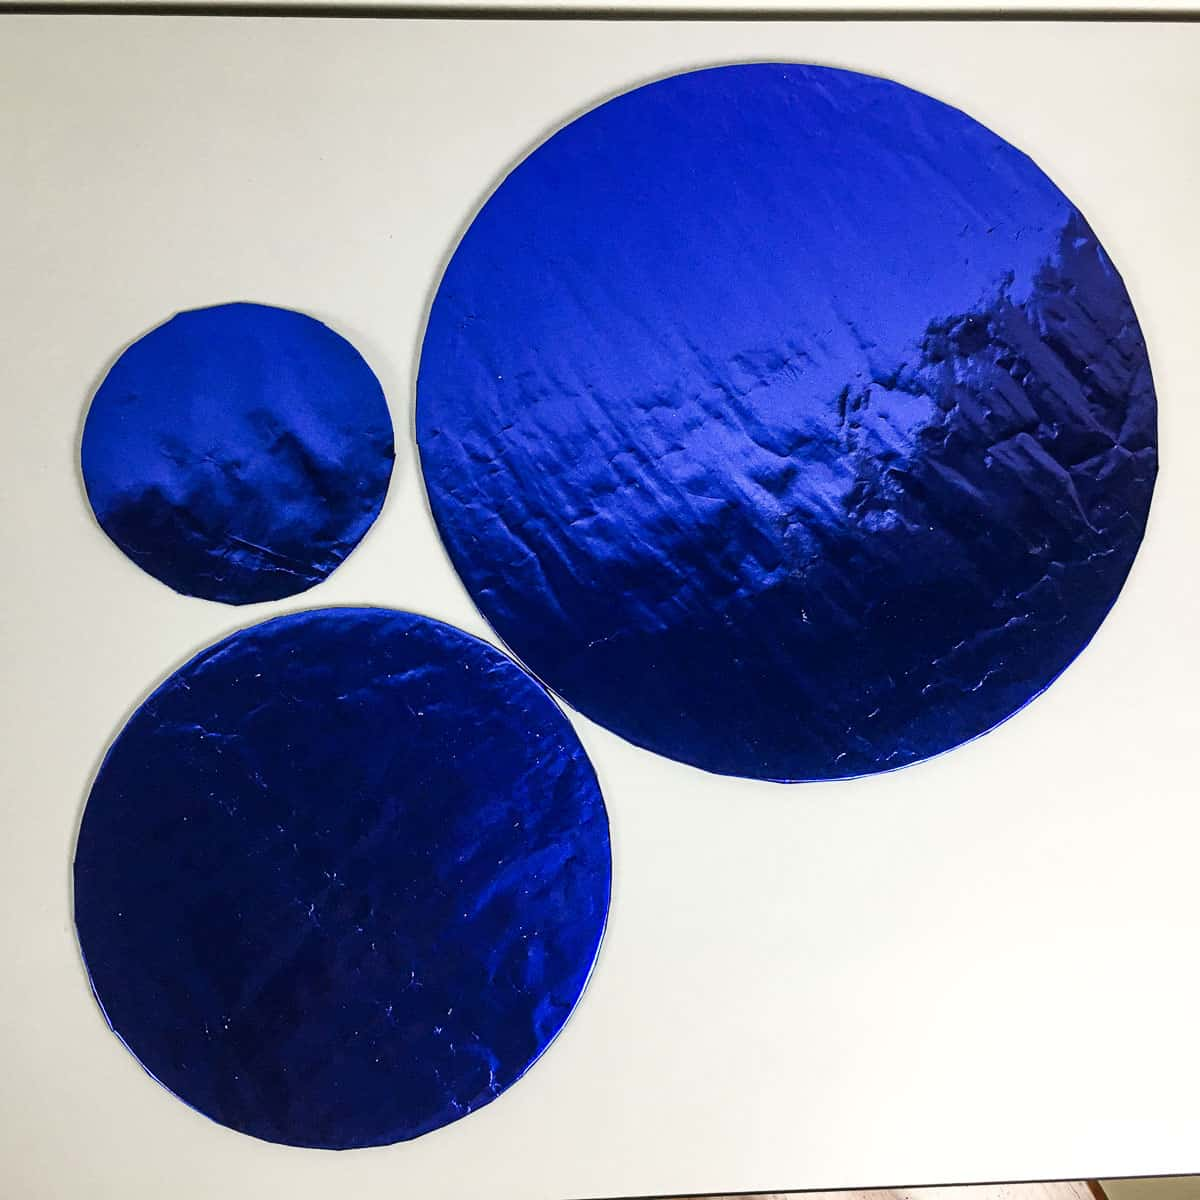 3 pieces of cake boards wrapped in shiny blue wrapper.